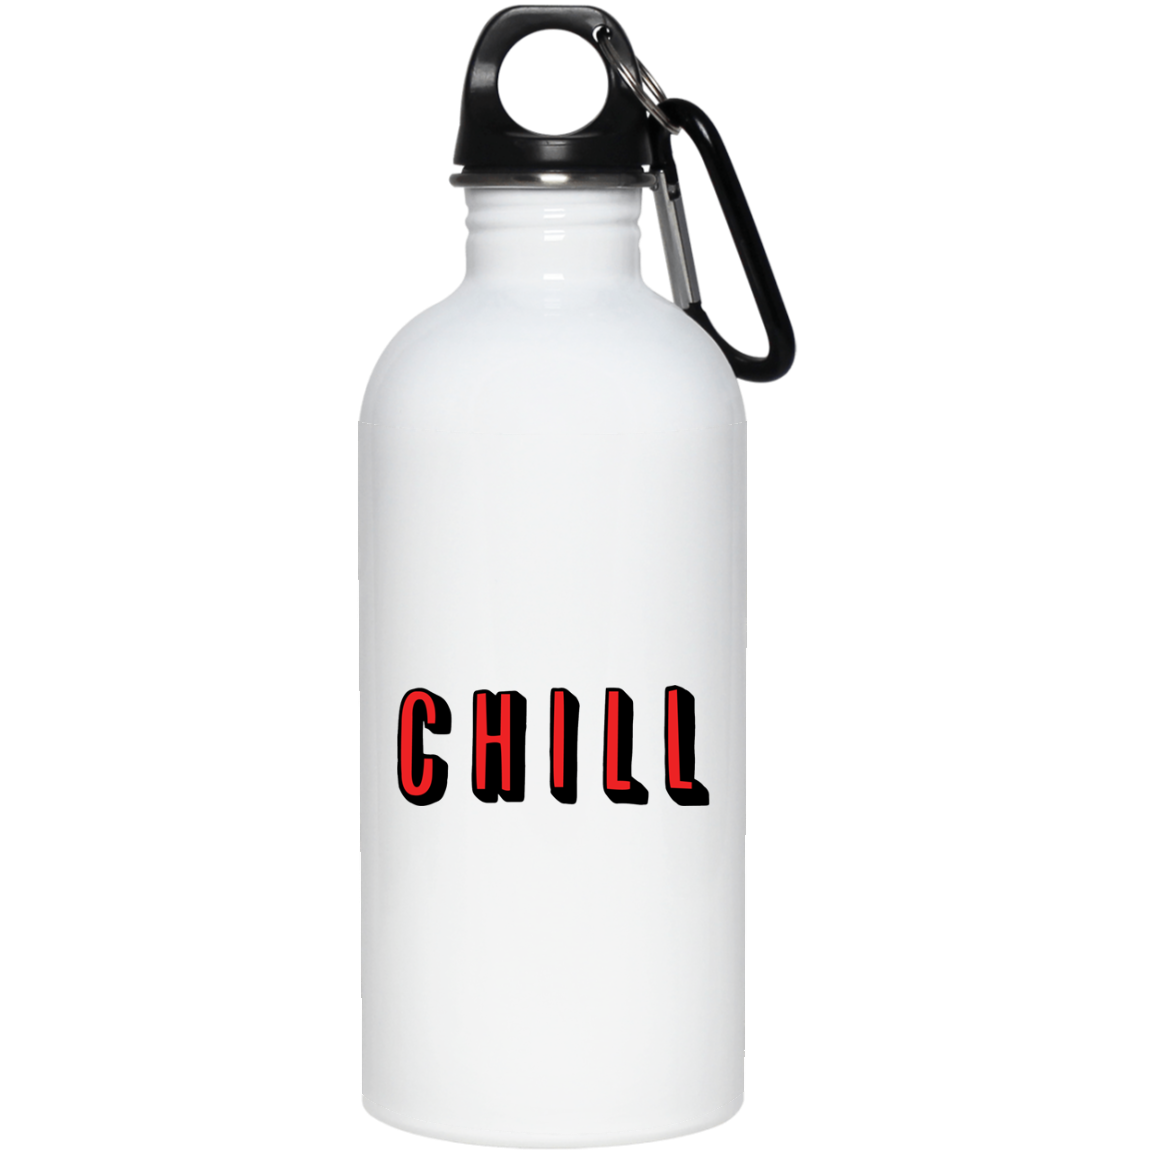 CHILL Stainless Steel Water Bottle